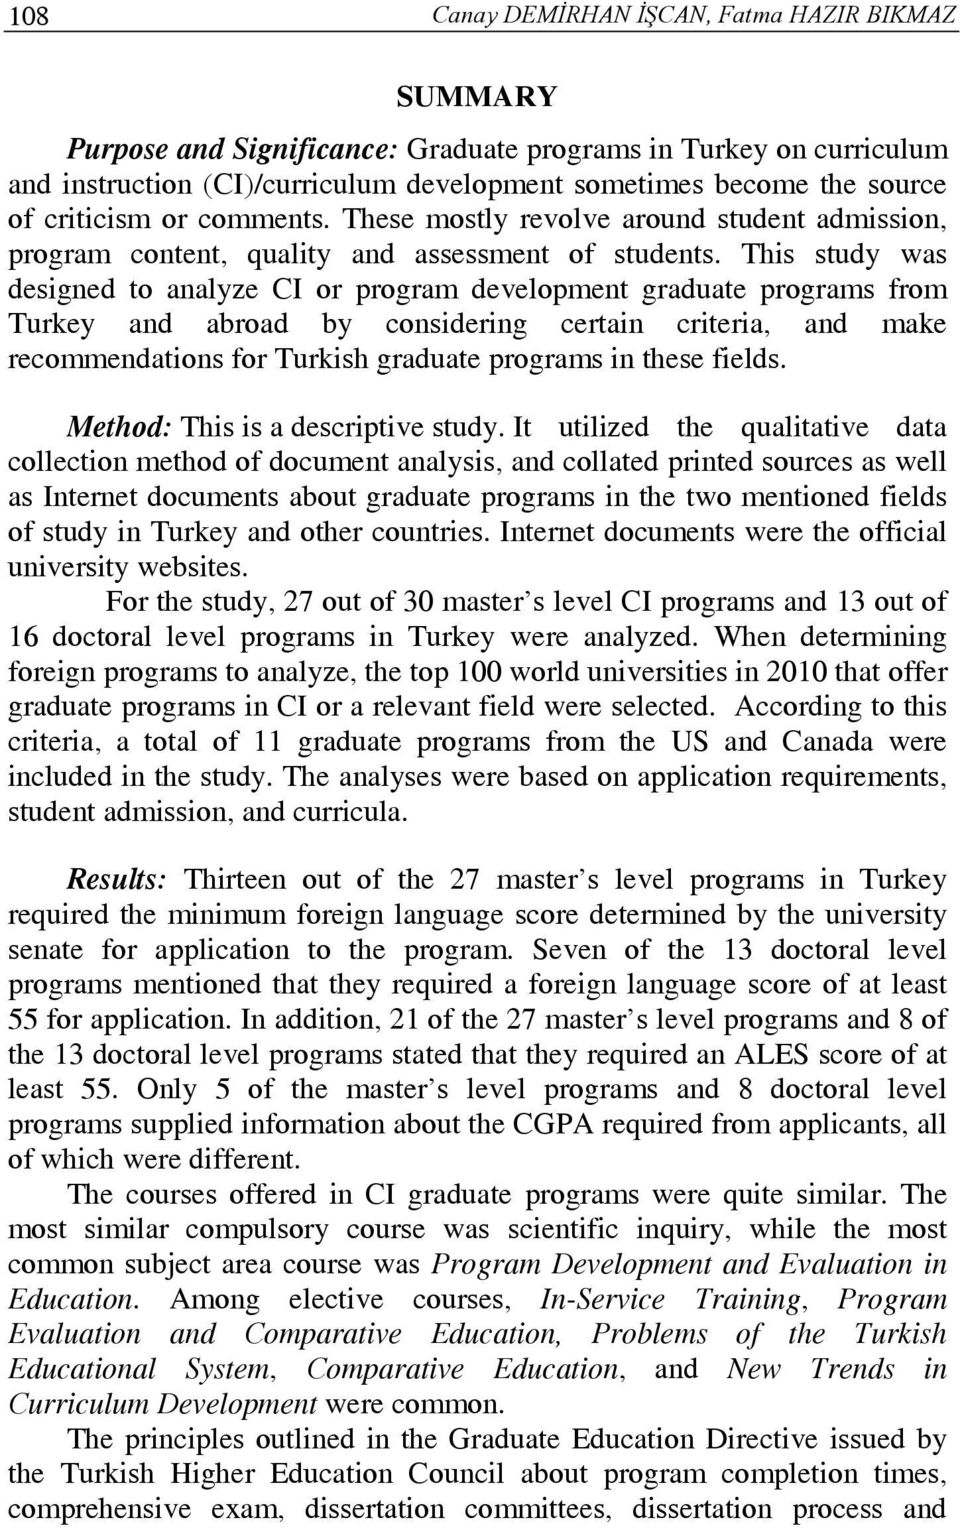 This study was designed to analyze CI or program development graduate programs rom Turkey and abroad by considering certain criteria, and make recommendations or Turkish graduate programs in these